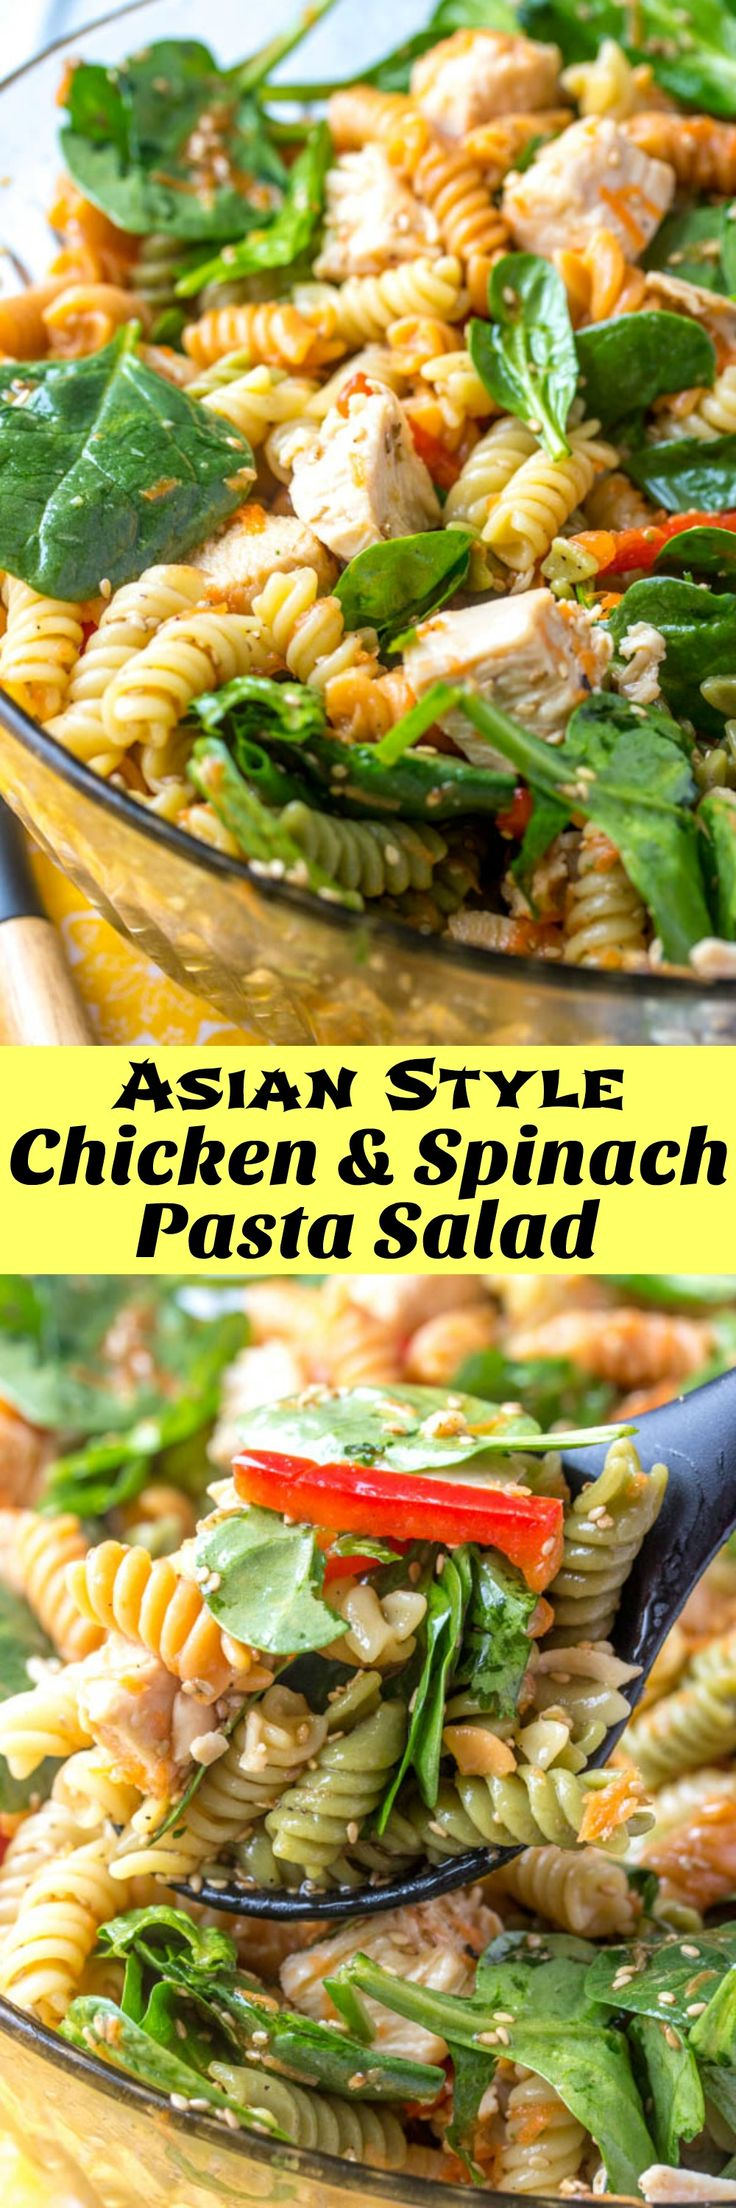 Asian Style Chicken & Spinach Pasta Salad | This Asian Style Chicken Spinach Pasta Salad, tossed in a sesame oil and soy sauce-based dressing, is a refreshing, Asian-inspired side dish perfect for picnics.  This is great for lunch, a light main meal, or even a supper-time side dish. Serve it for the family, or make it ahead for your next barbecue. | 4 Sons 'R' Us